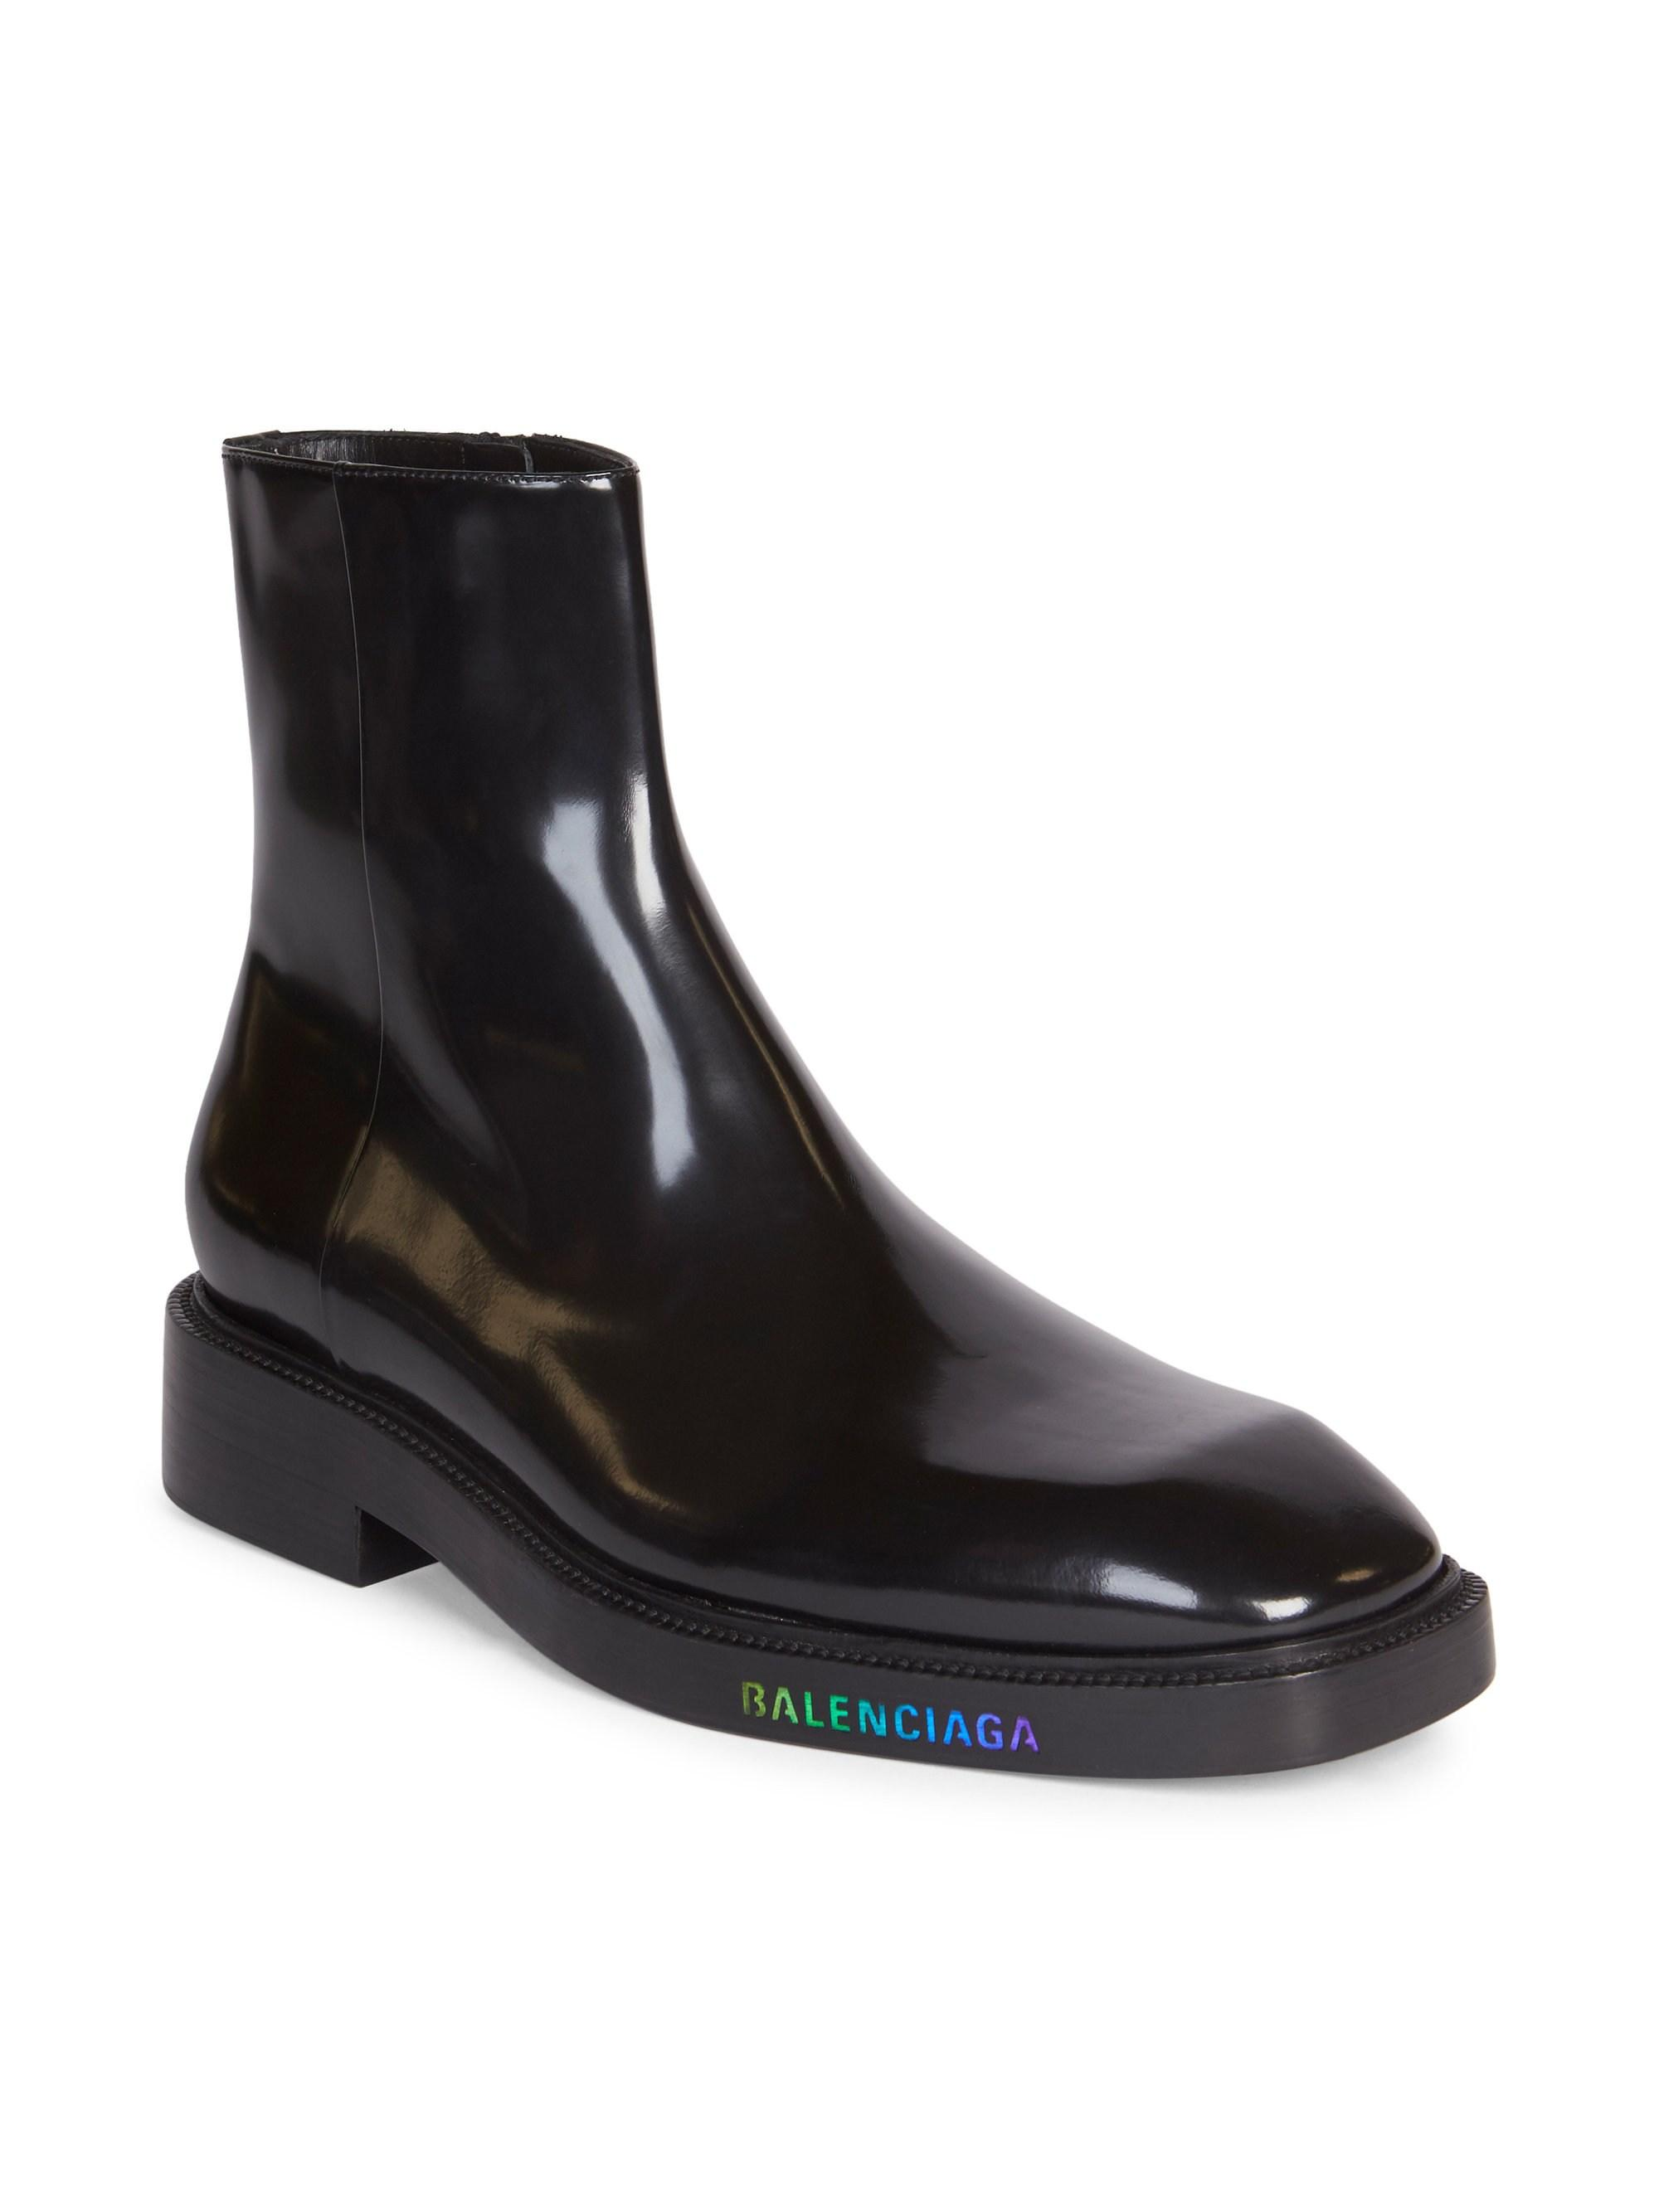 Led Patent Leather Ankle Boots - Black